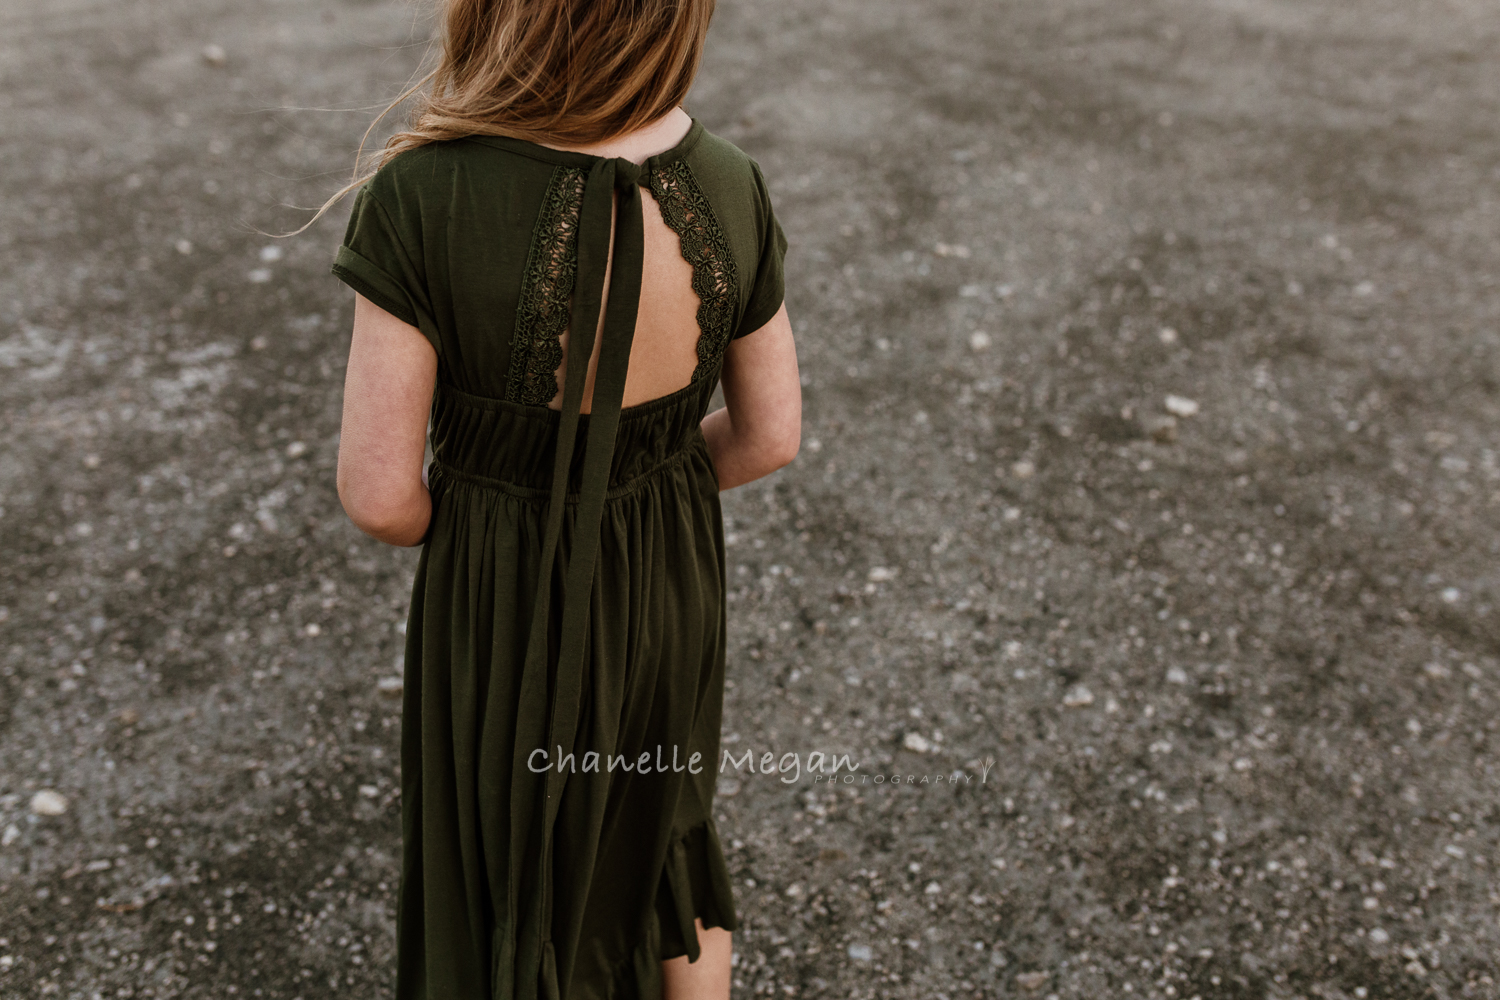 Capturing the details of your kids childhood, Chanelle Megan Photography demonstrates this through a travelling dress that passed through Perth